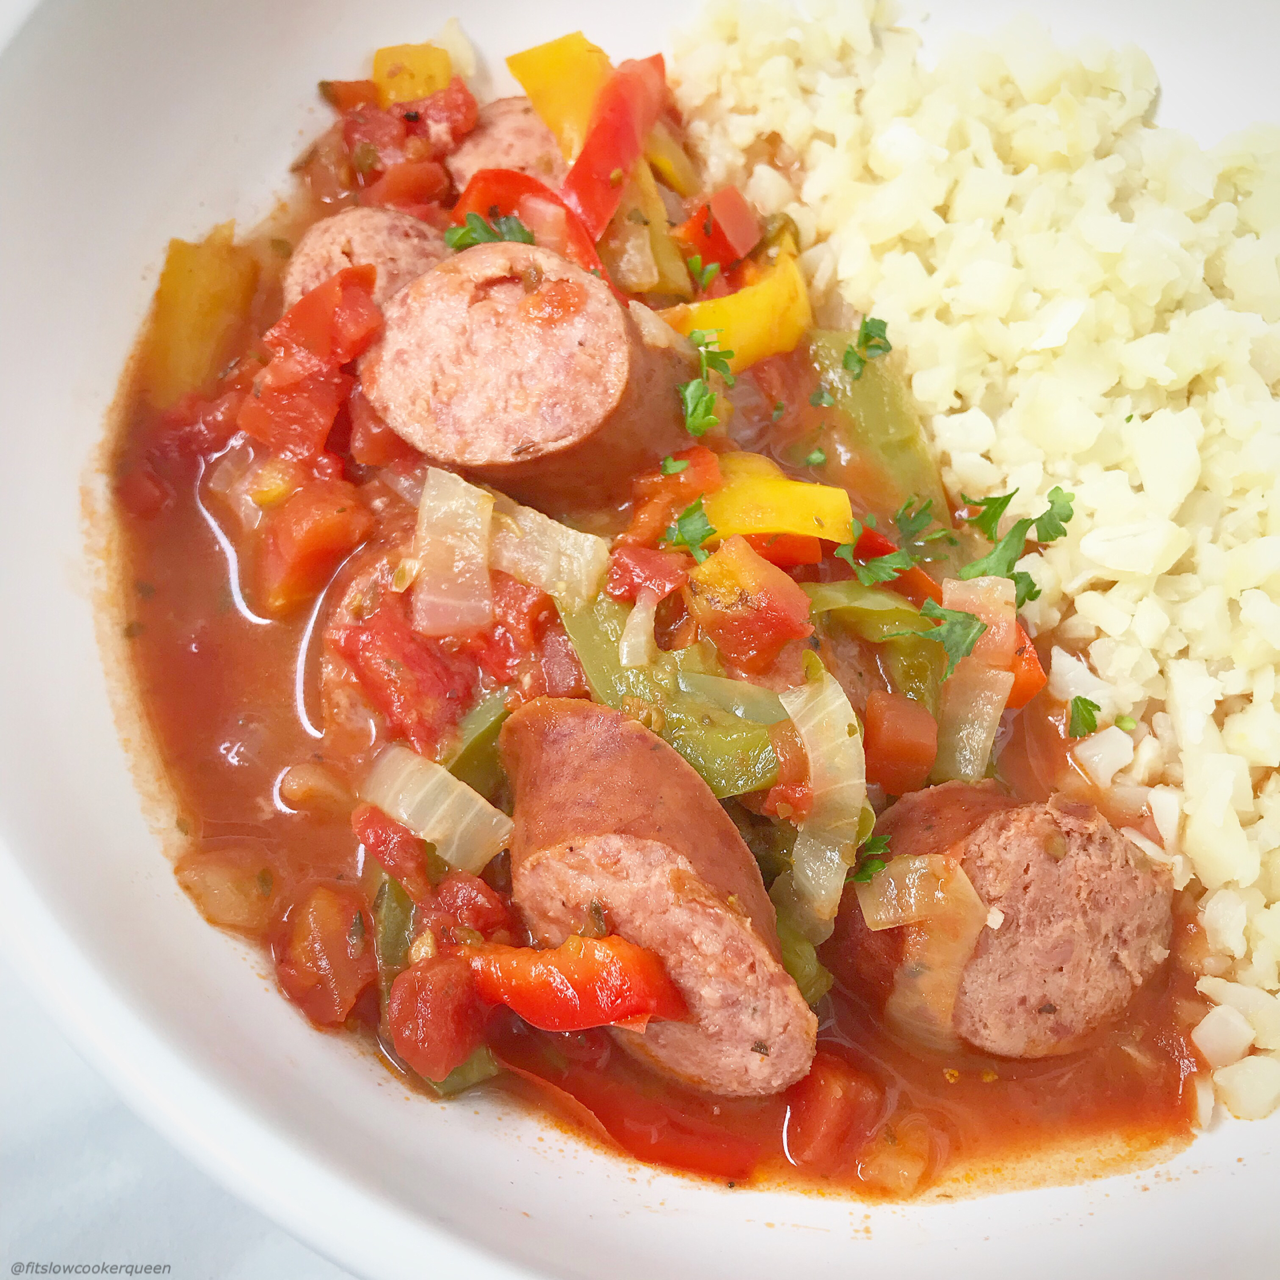 Grab your favorite sausage and slow cook them with bell peppers, onions, and tomatoes in this aromatic and flavorful paleo, whole30, and low-carb recipe.